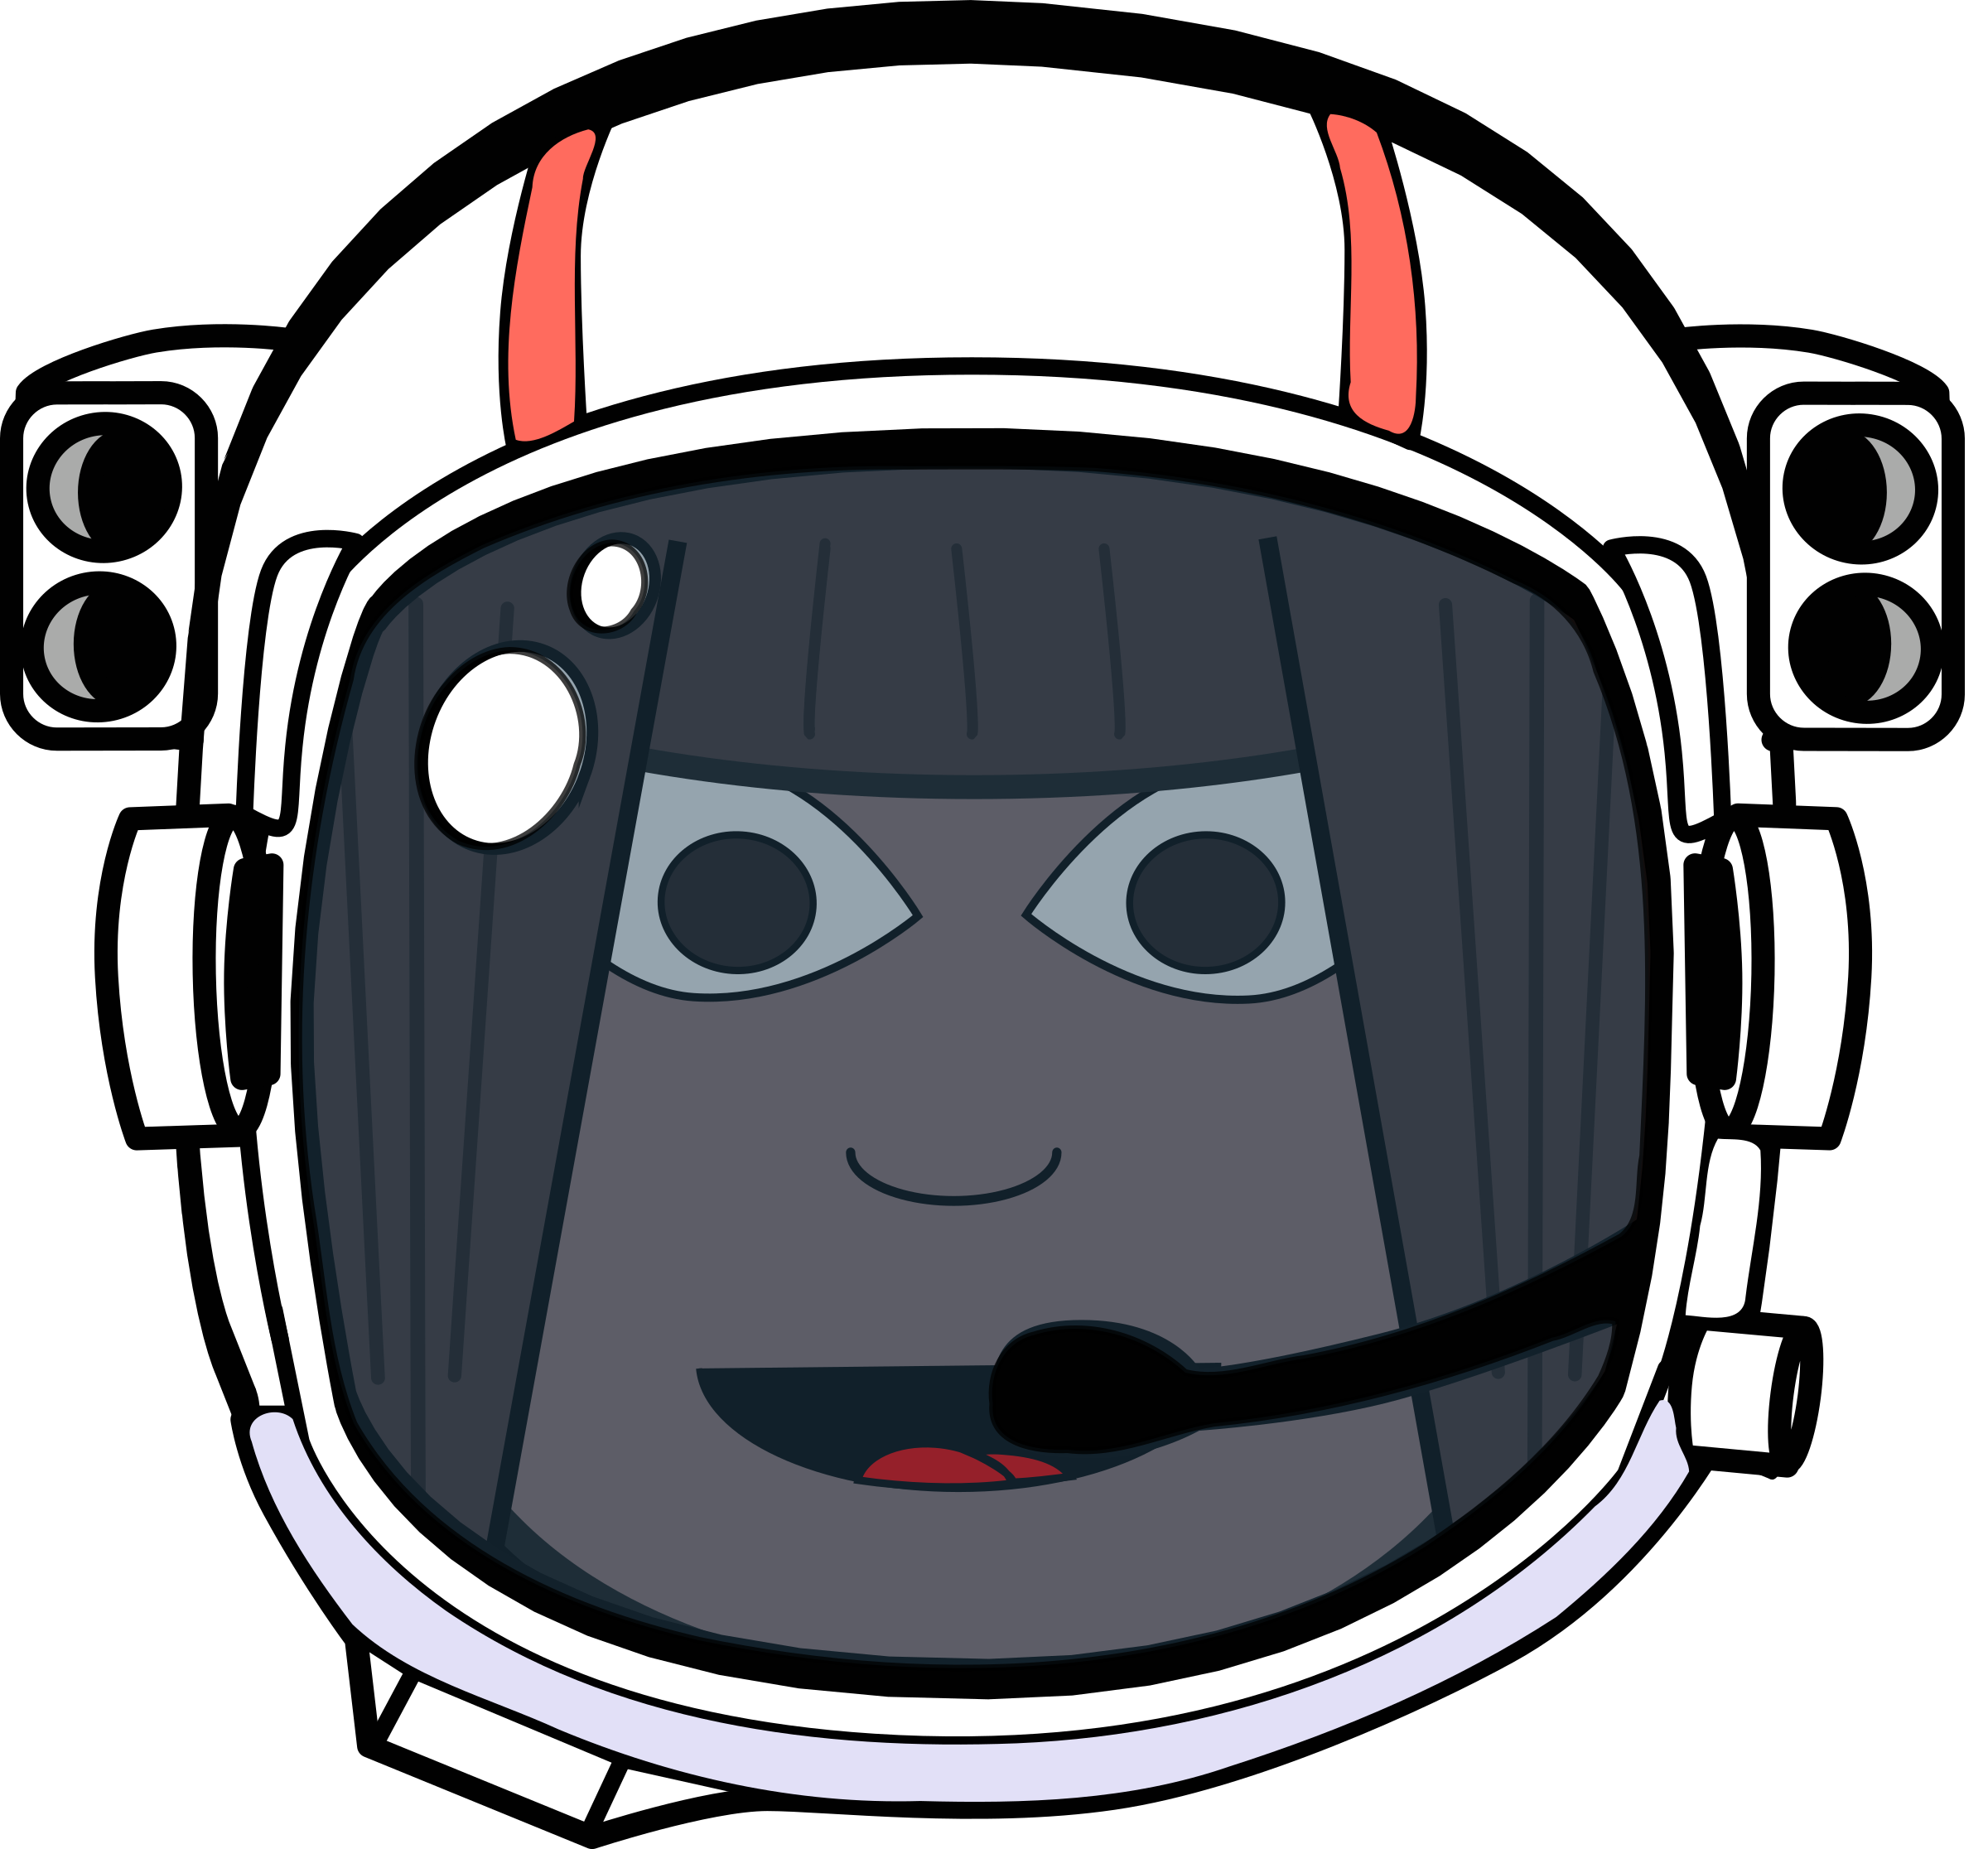 Girls clipart astronaut. Space girl icons png